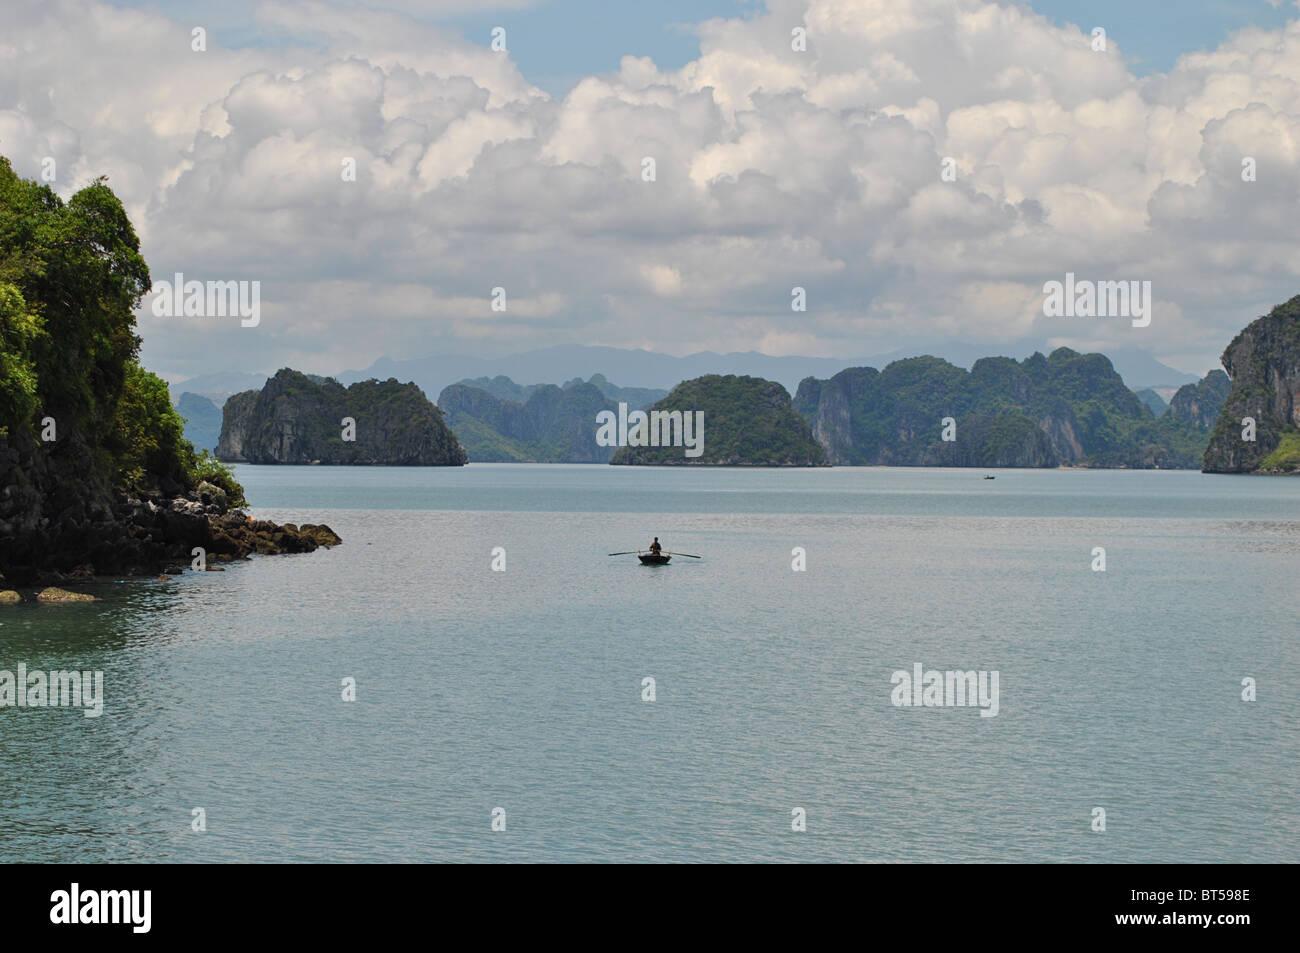 Rowing boat in Halong Bay, Vietnam - Stock Image